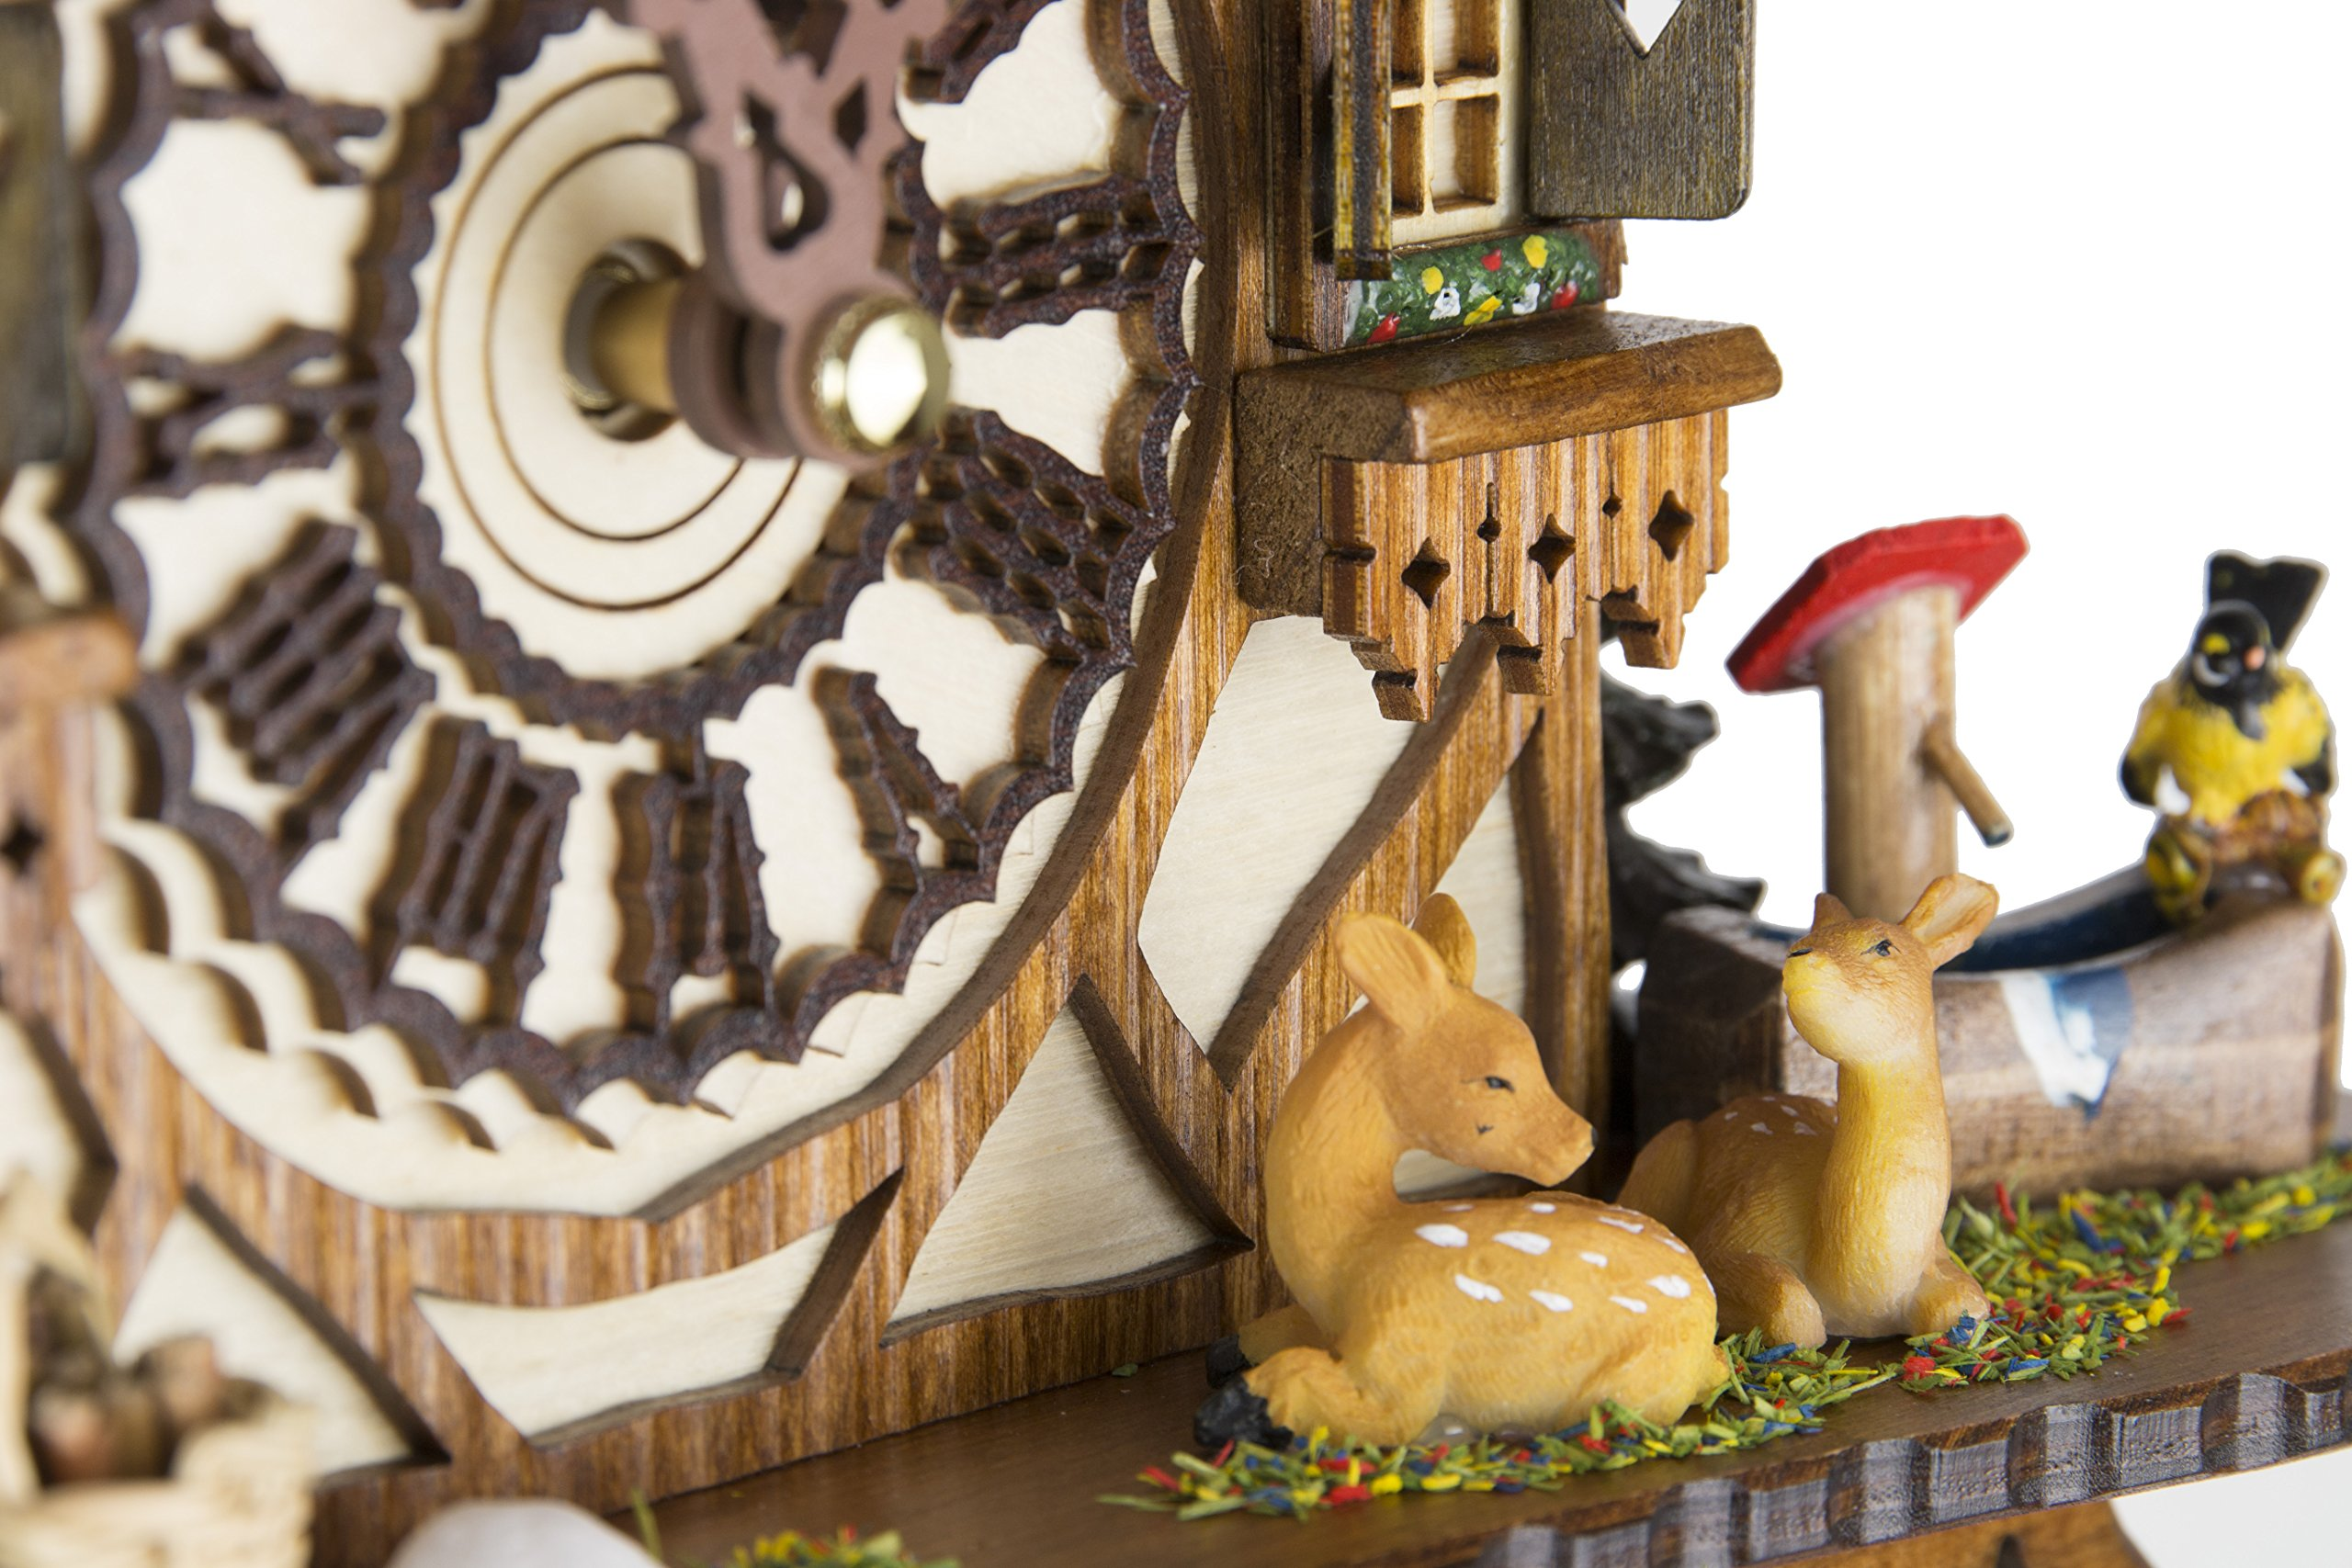 German Cuckoo Clock - Blackforest Hillside Chalet with wonderful animals - BY CUCKOO-PALACE with quartz movement - 10 1/4 inches height by Cuckoo-Palace (Image #3)